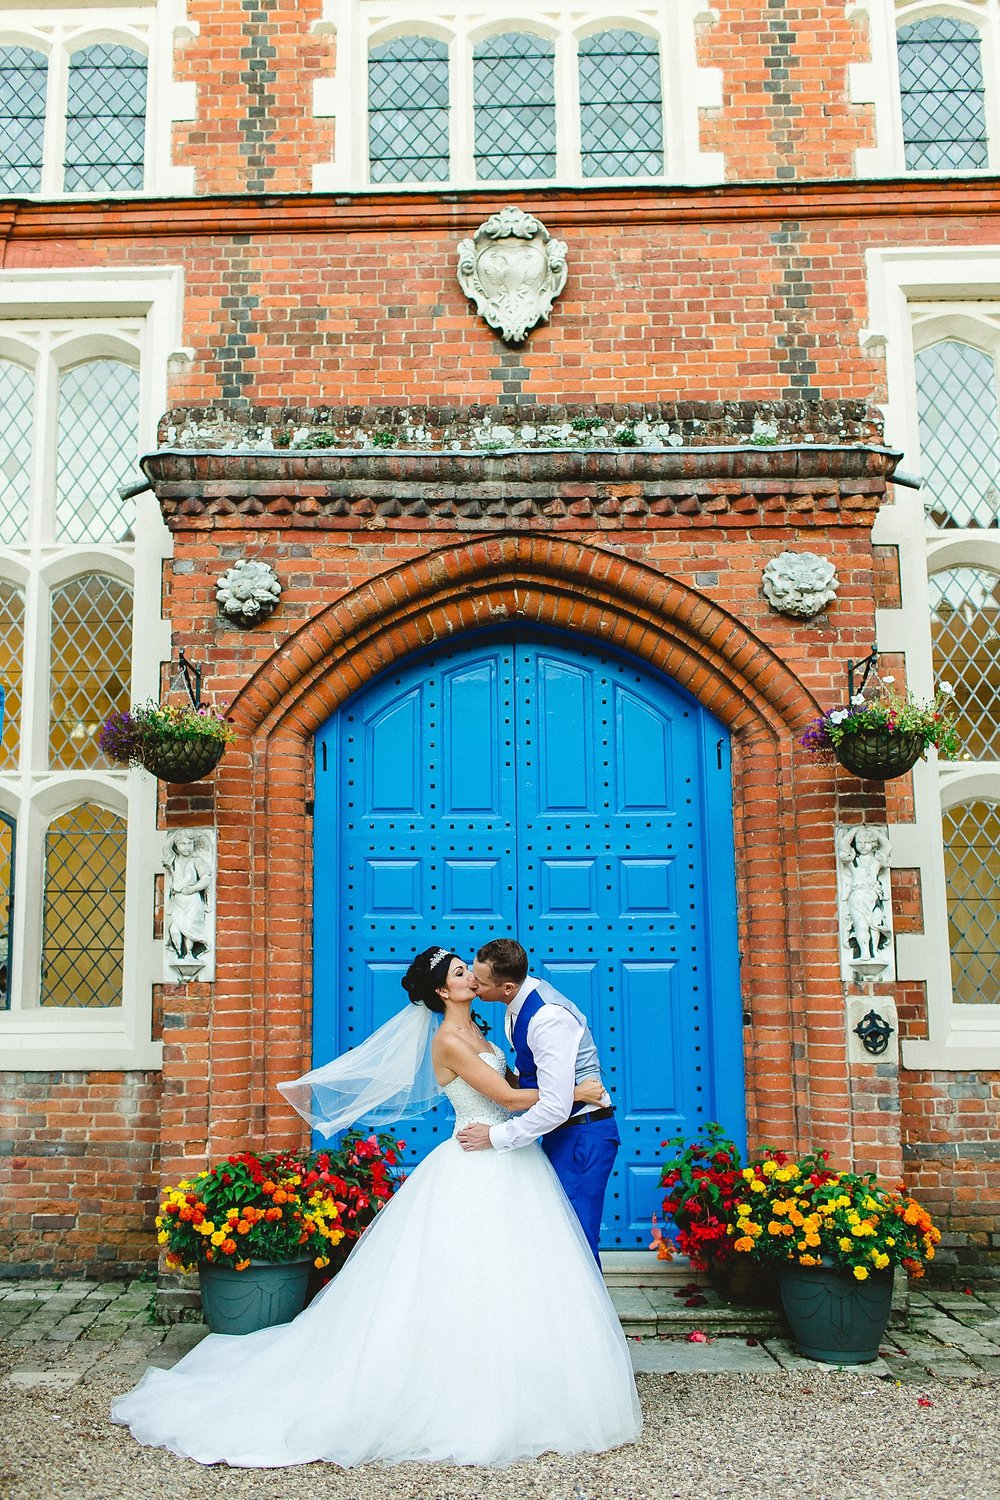 Gosfield Hall Wedding - Couple Portrait